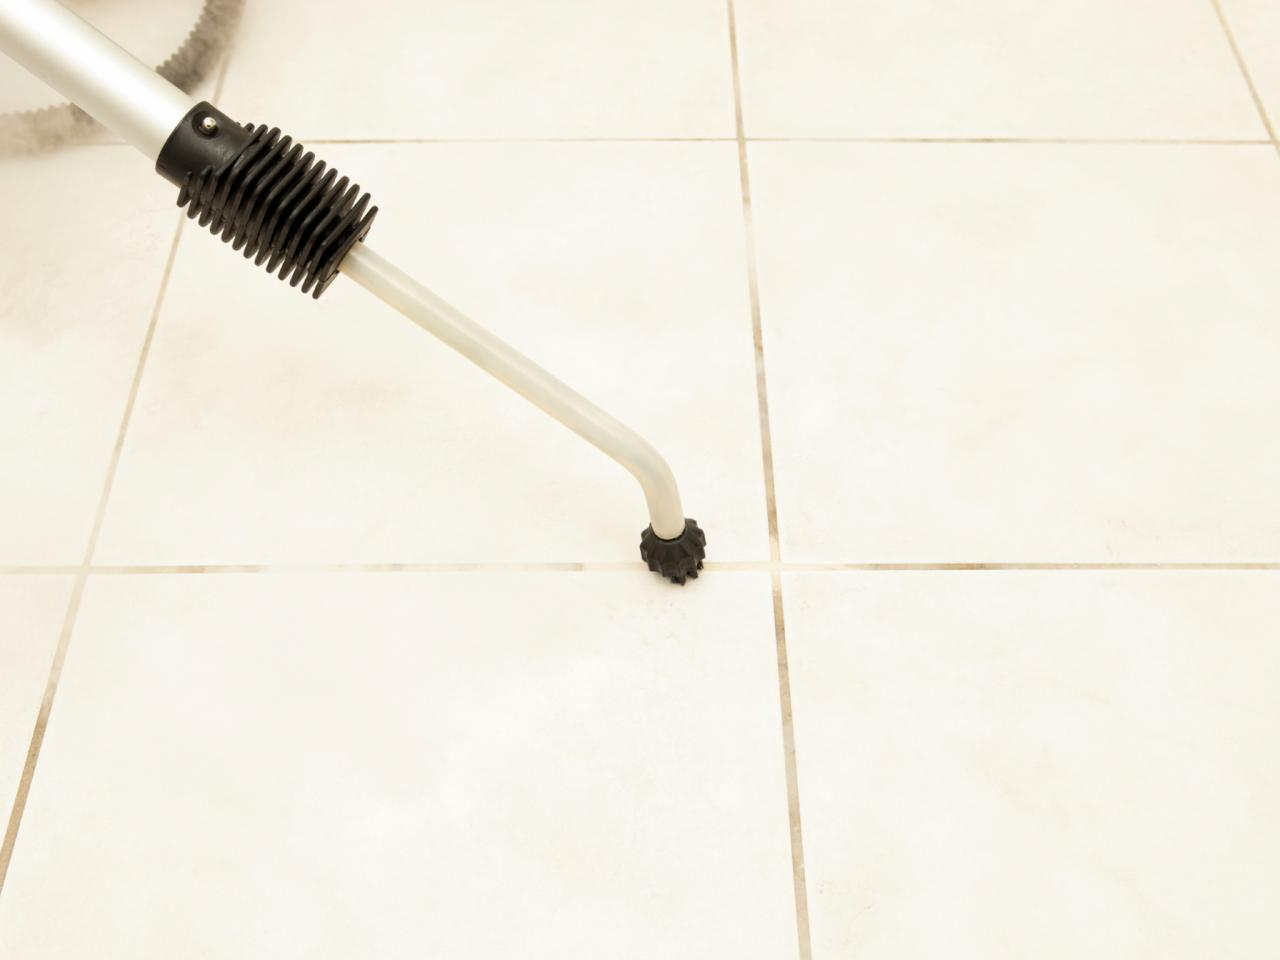 how to clean grout on floor tiles 2020